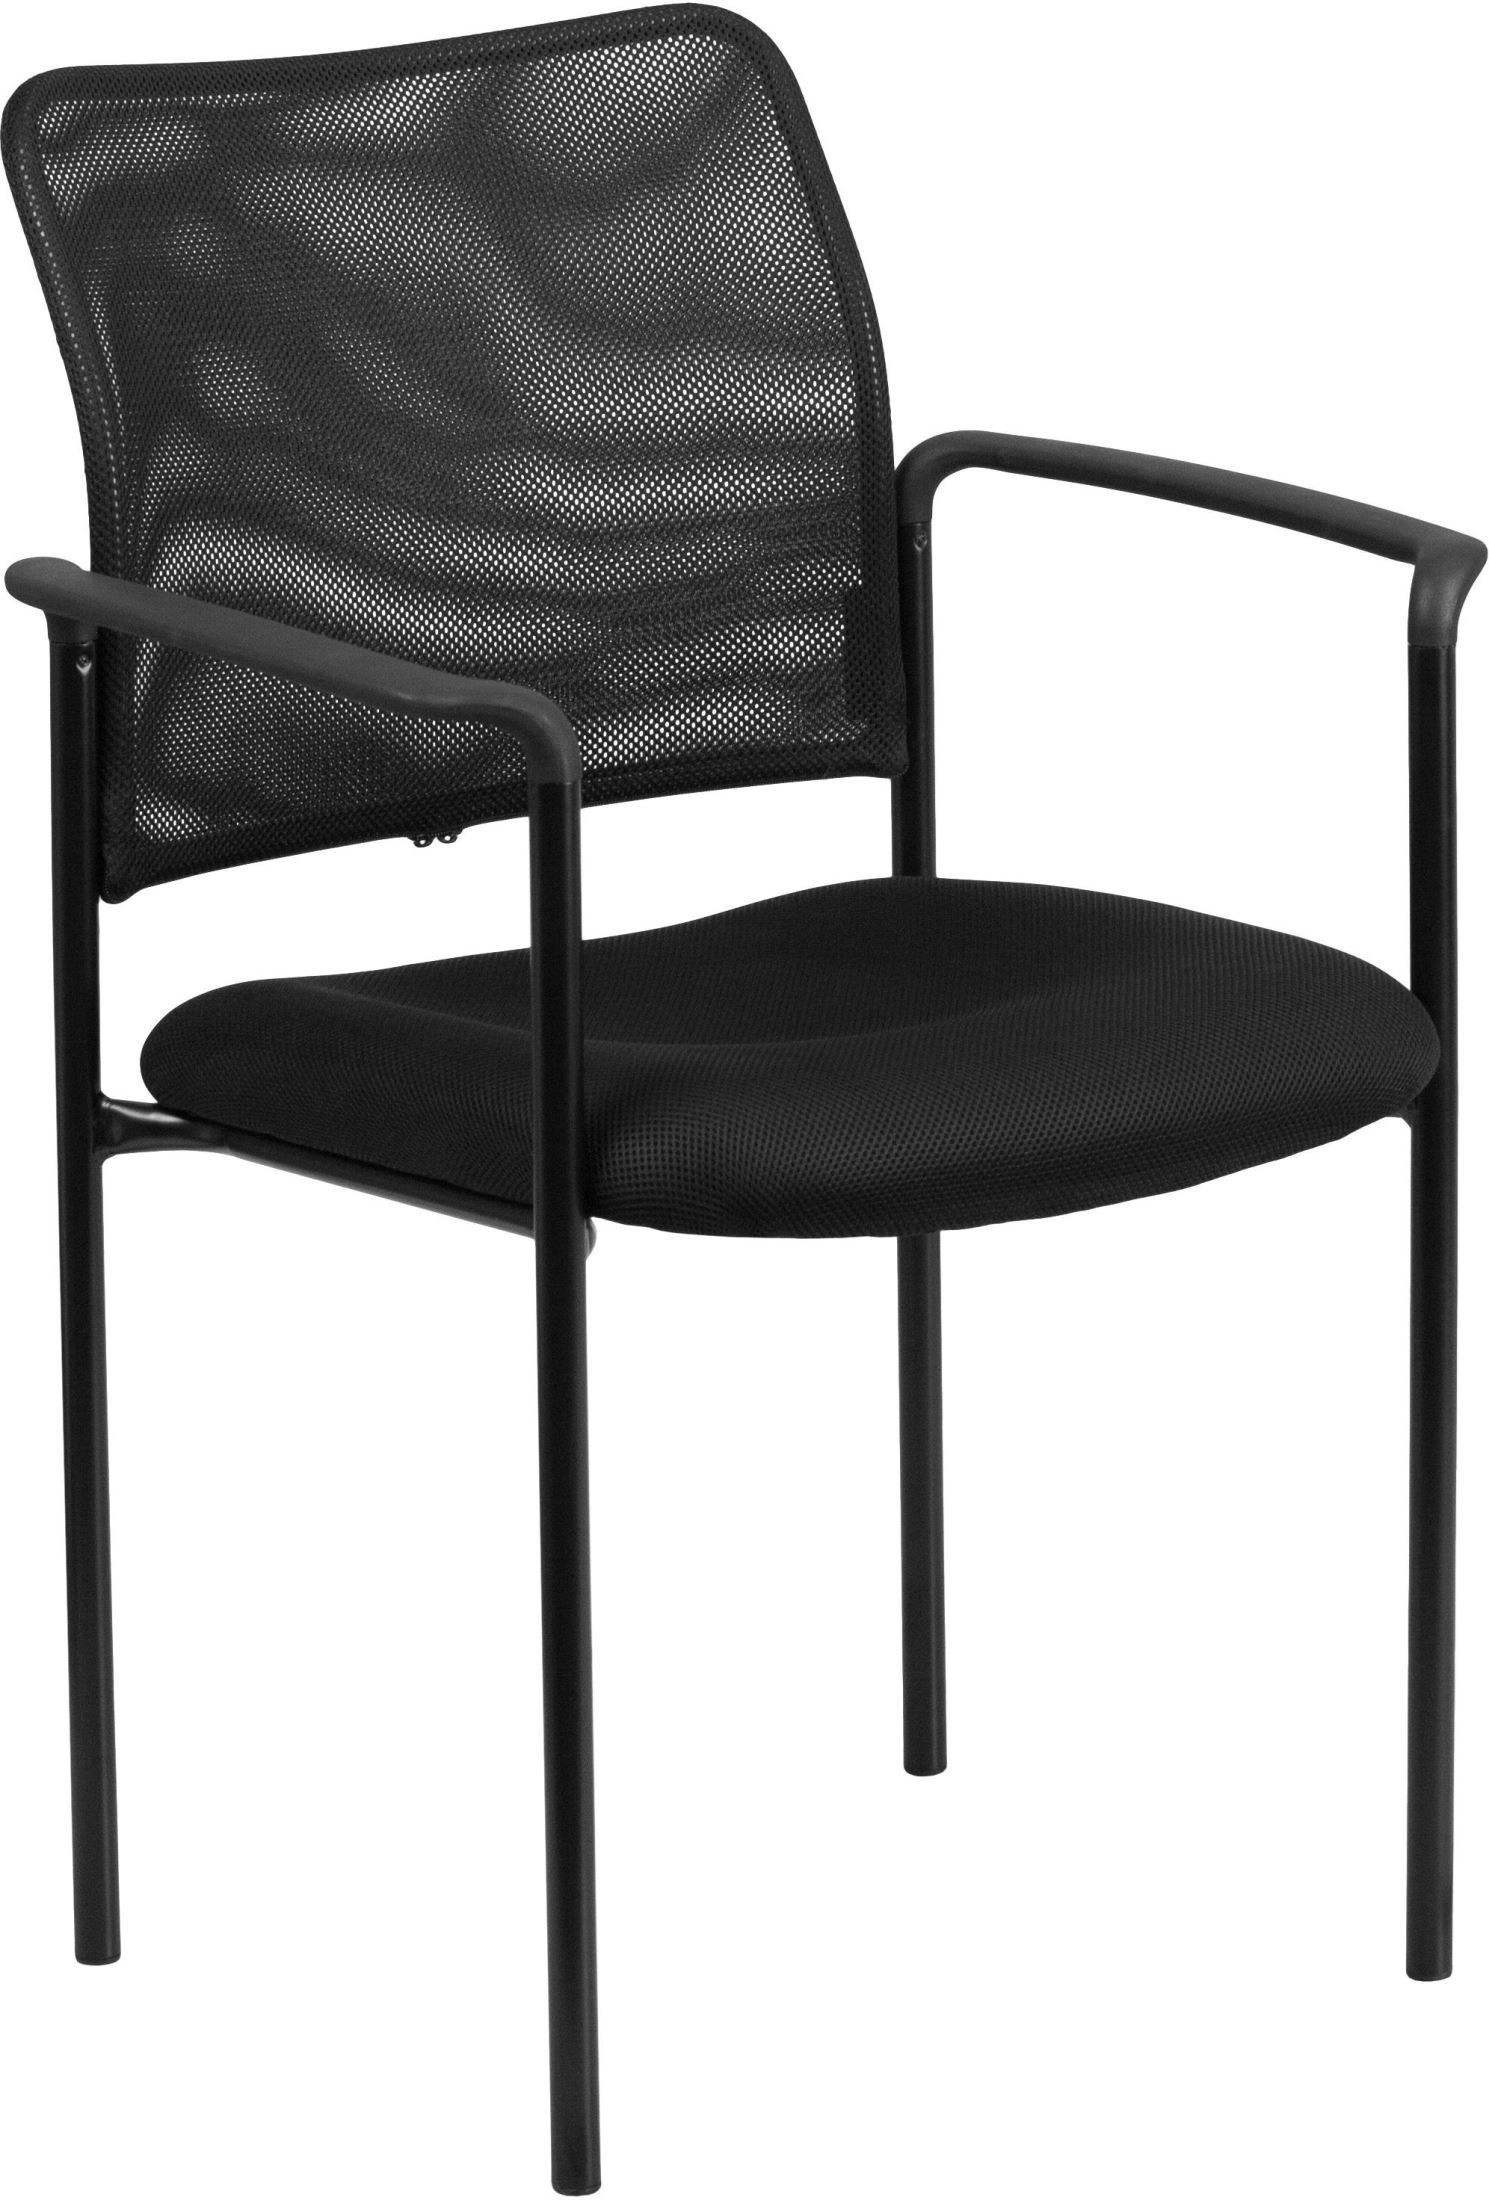 stackable chairs with arms ergonomic chair ultrasound black comfortable steel arm go 516 2 gg